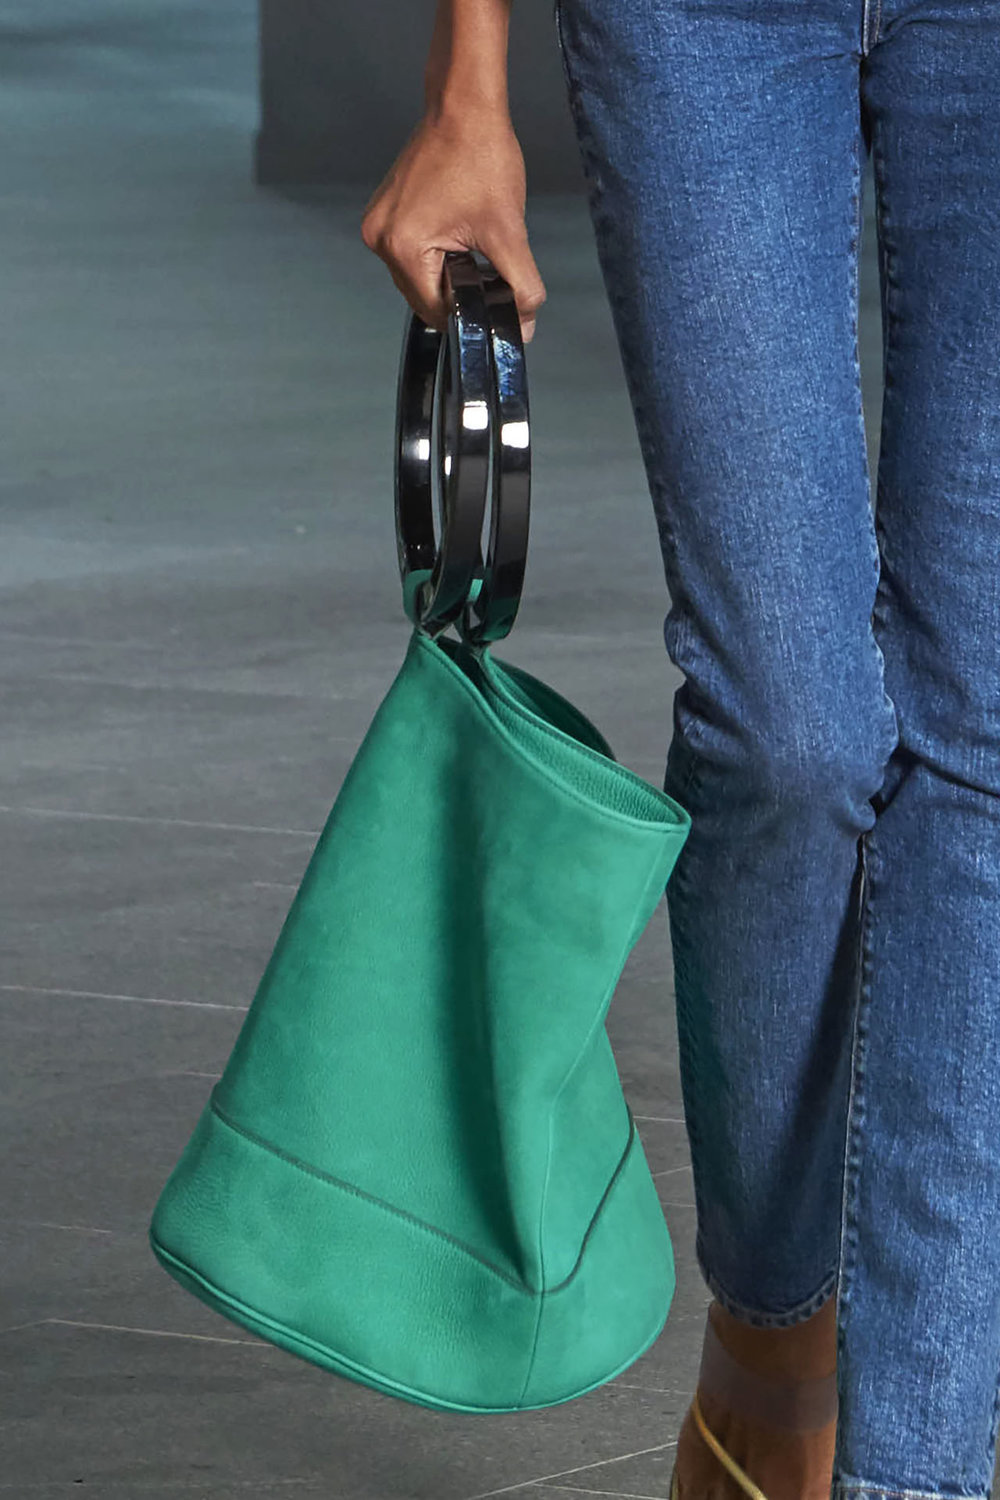 new-york-fashion-week-bags-spring-2018-simon-miller-teal-handbag.jpg